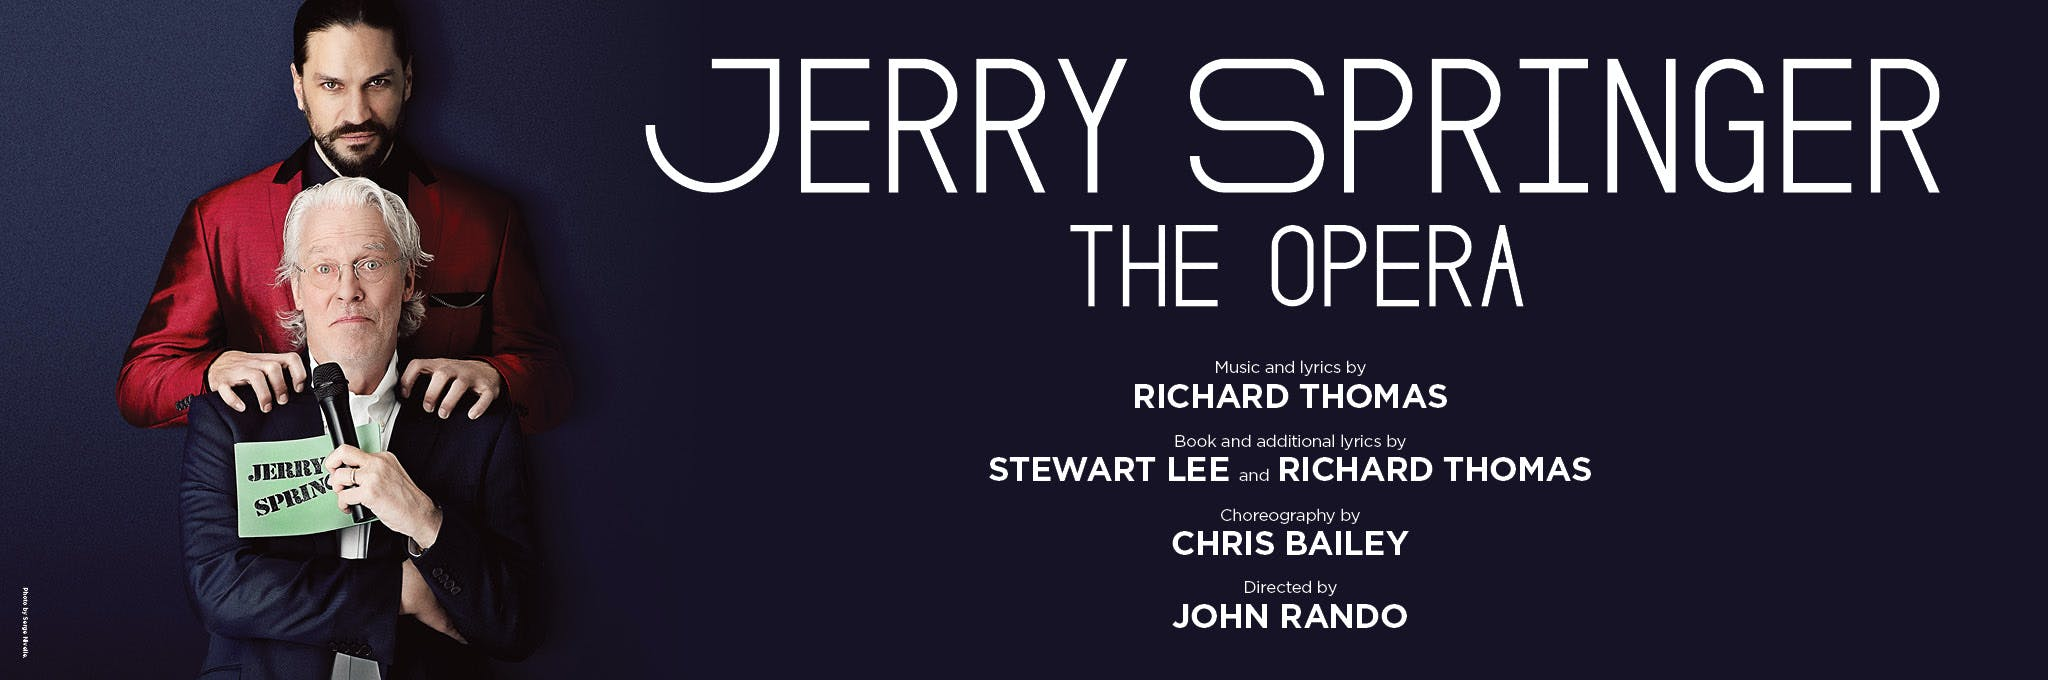 Jerry Springer - The Opera Logo